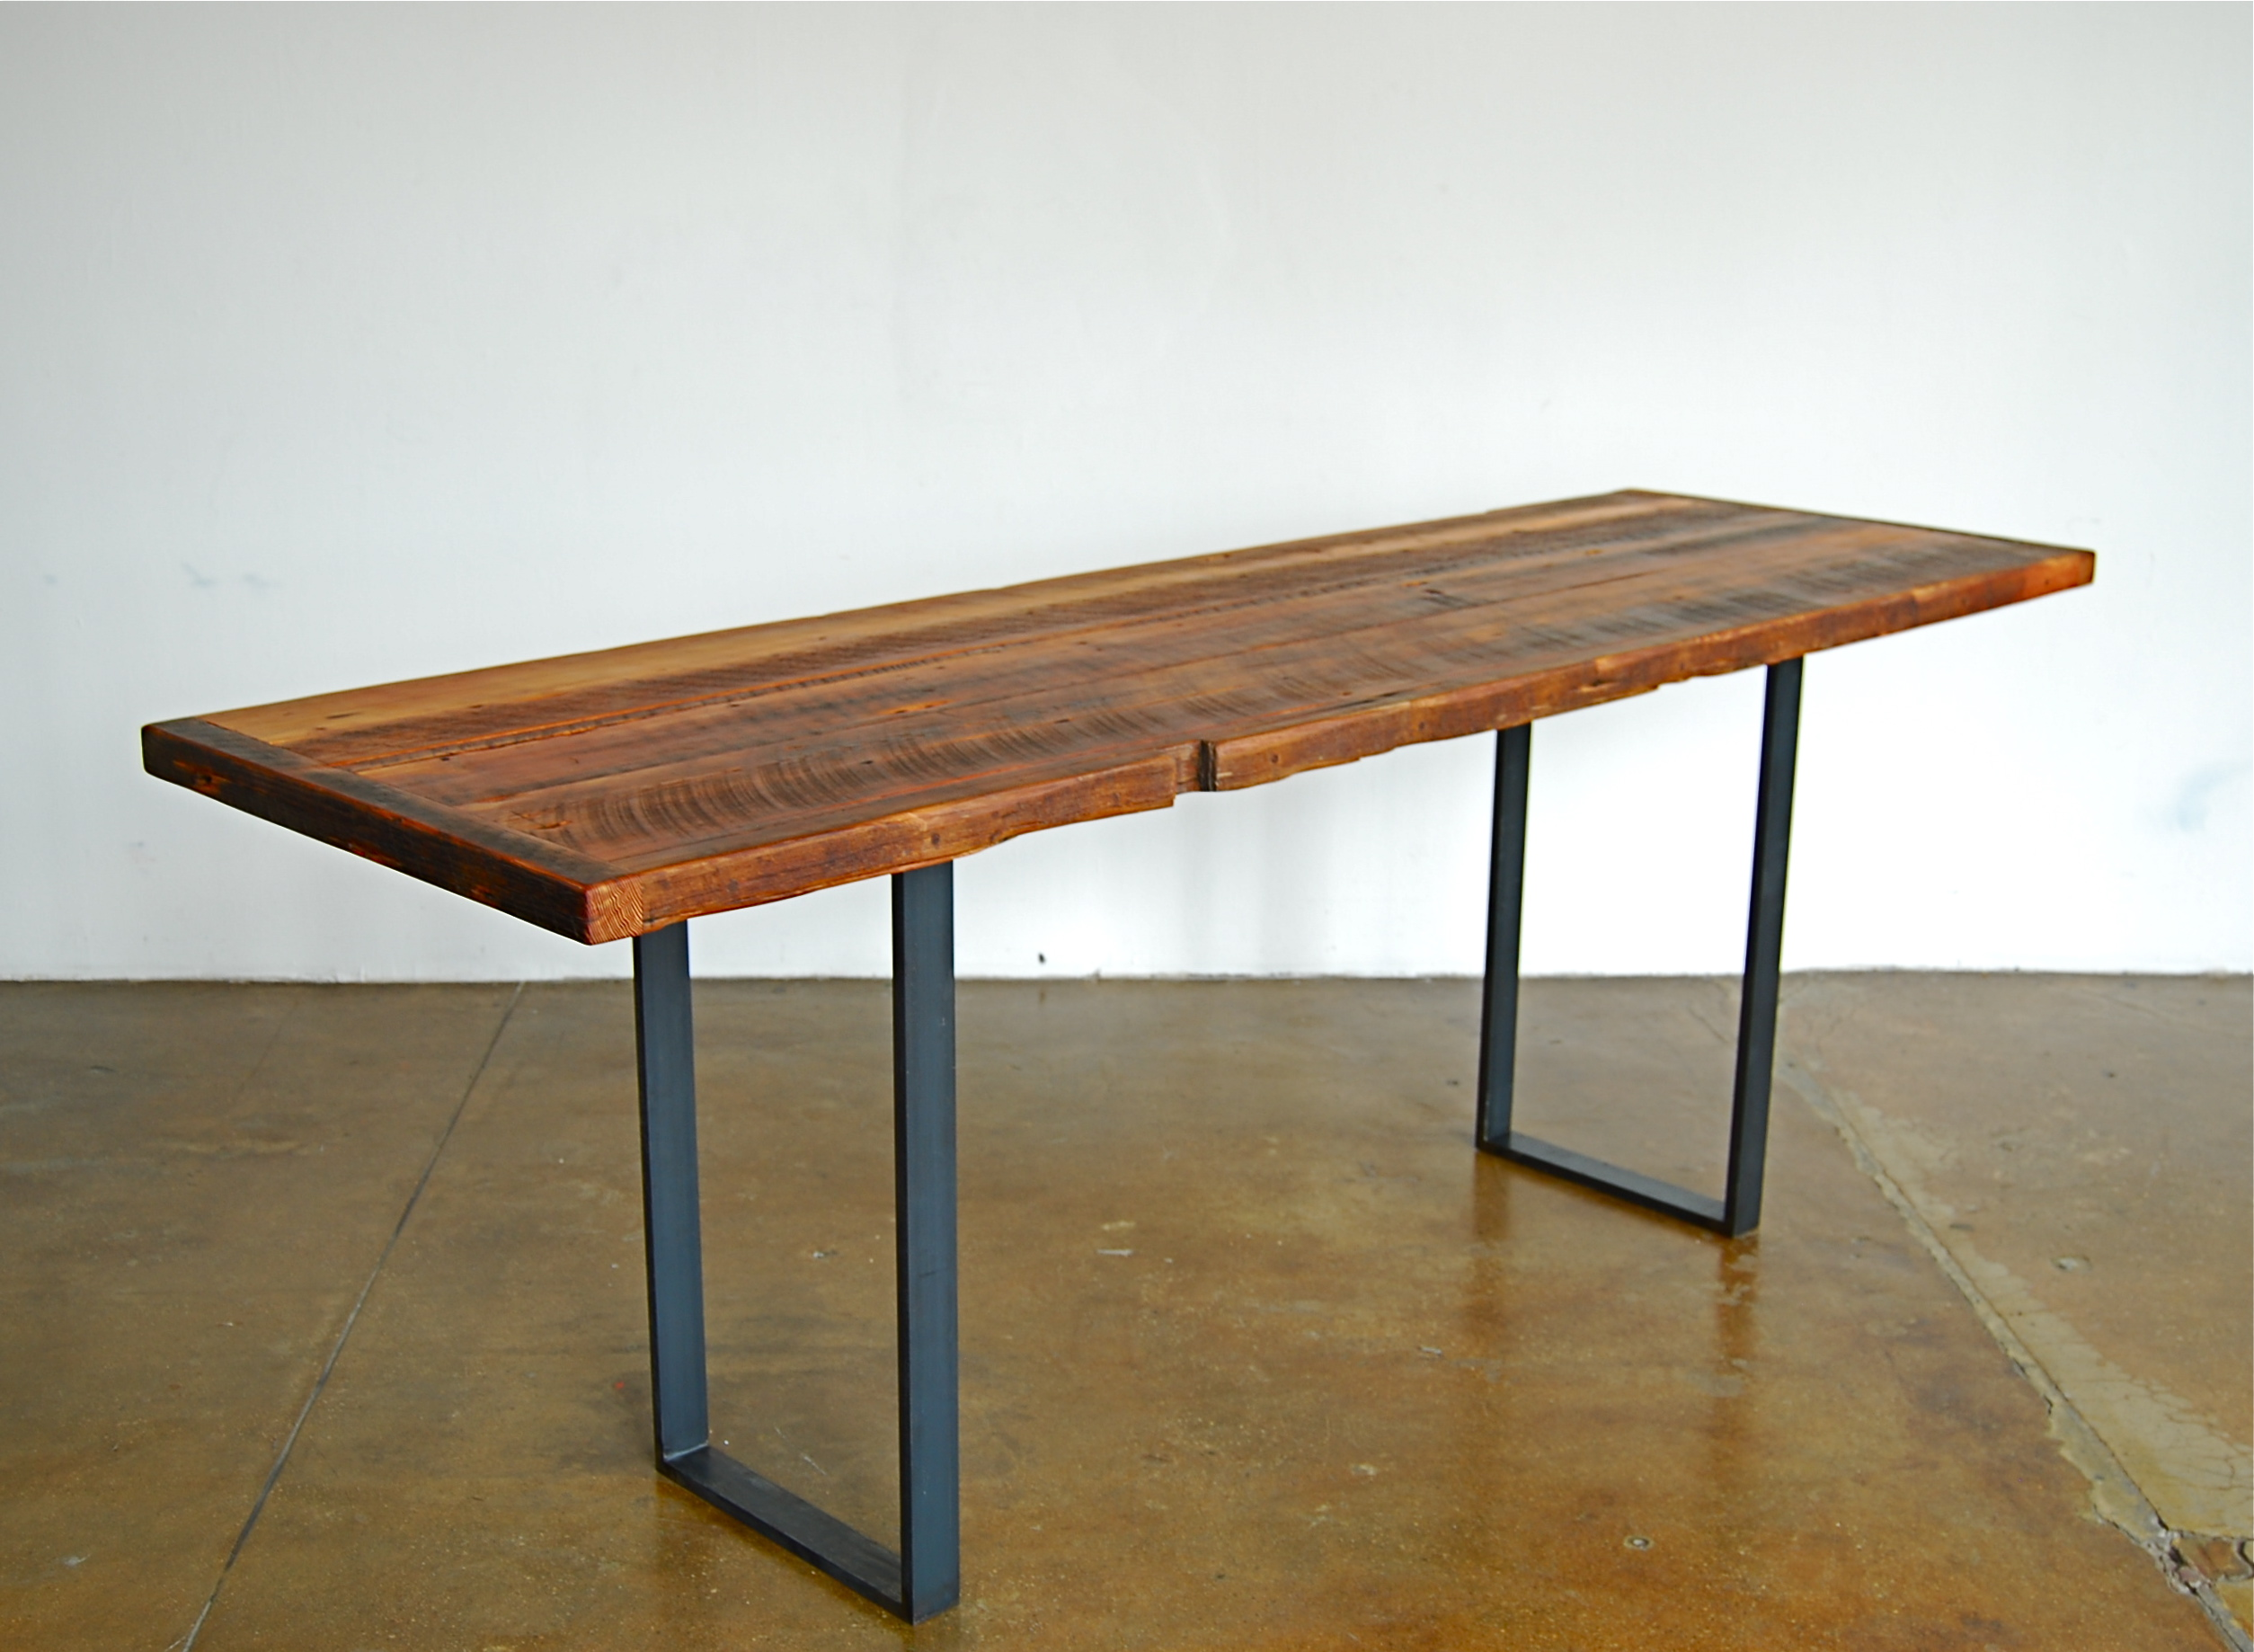 Dwelling dining tables on pinterest wood dining tables for Thin dining table